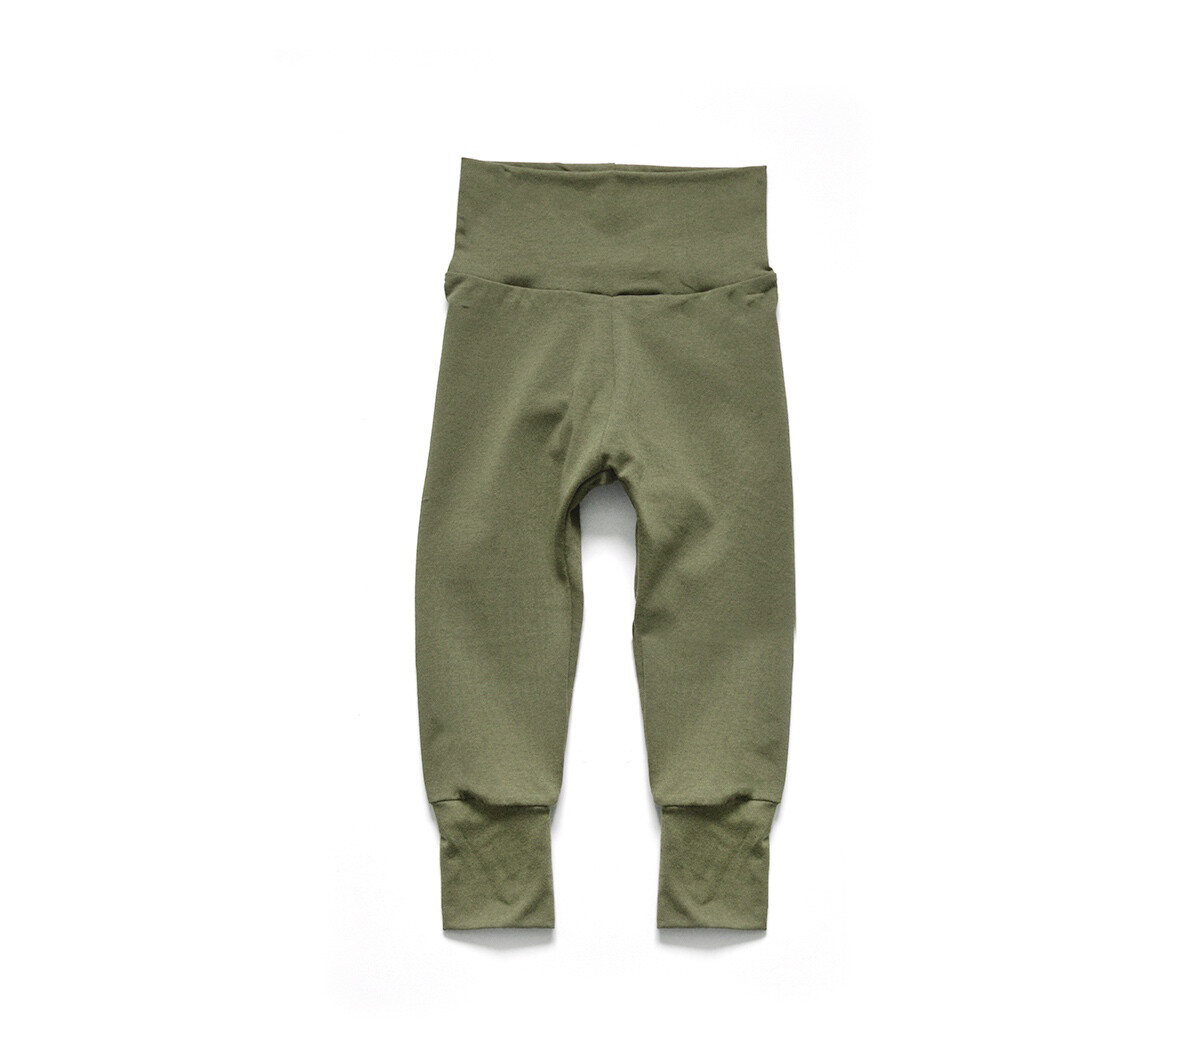 Little Sprout Pants™ in Olive | Grow With Me Leggings - Stretch